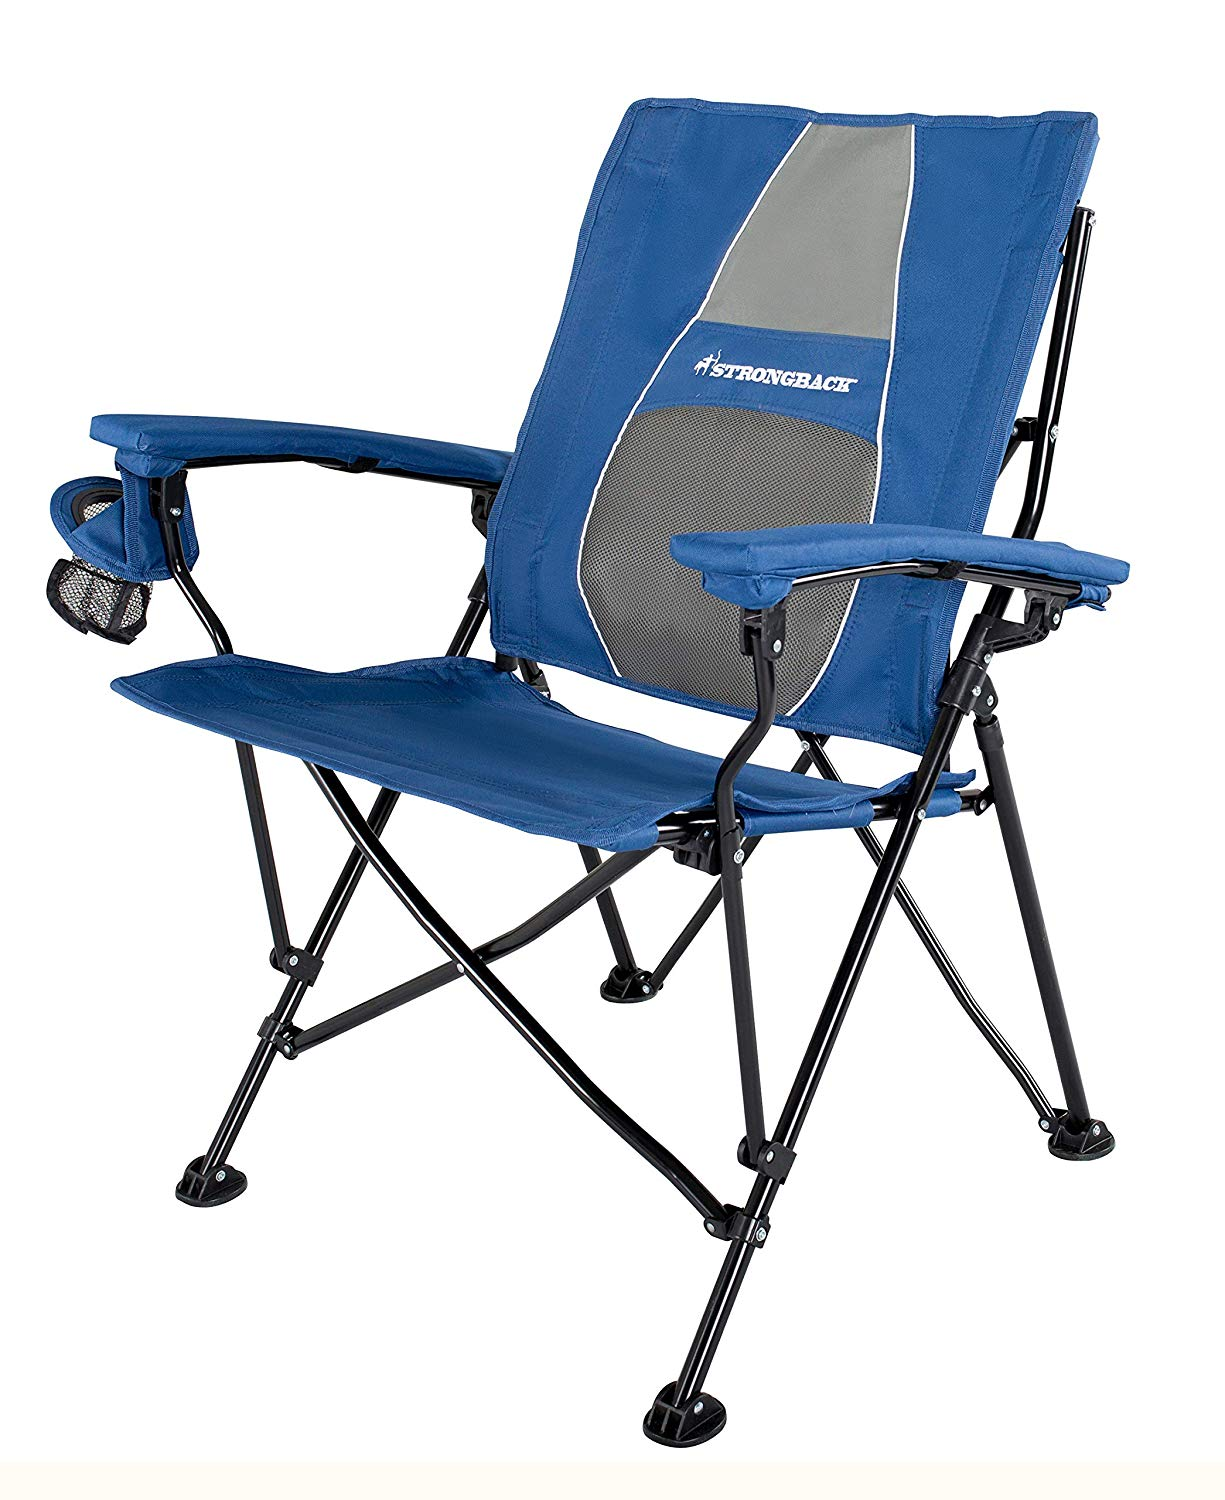 STRONGBACK Elite Folding Camping Lawn Lounge Chair Heavy Duty Camp Outdoor Seat Navy